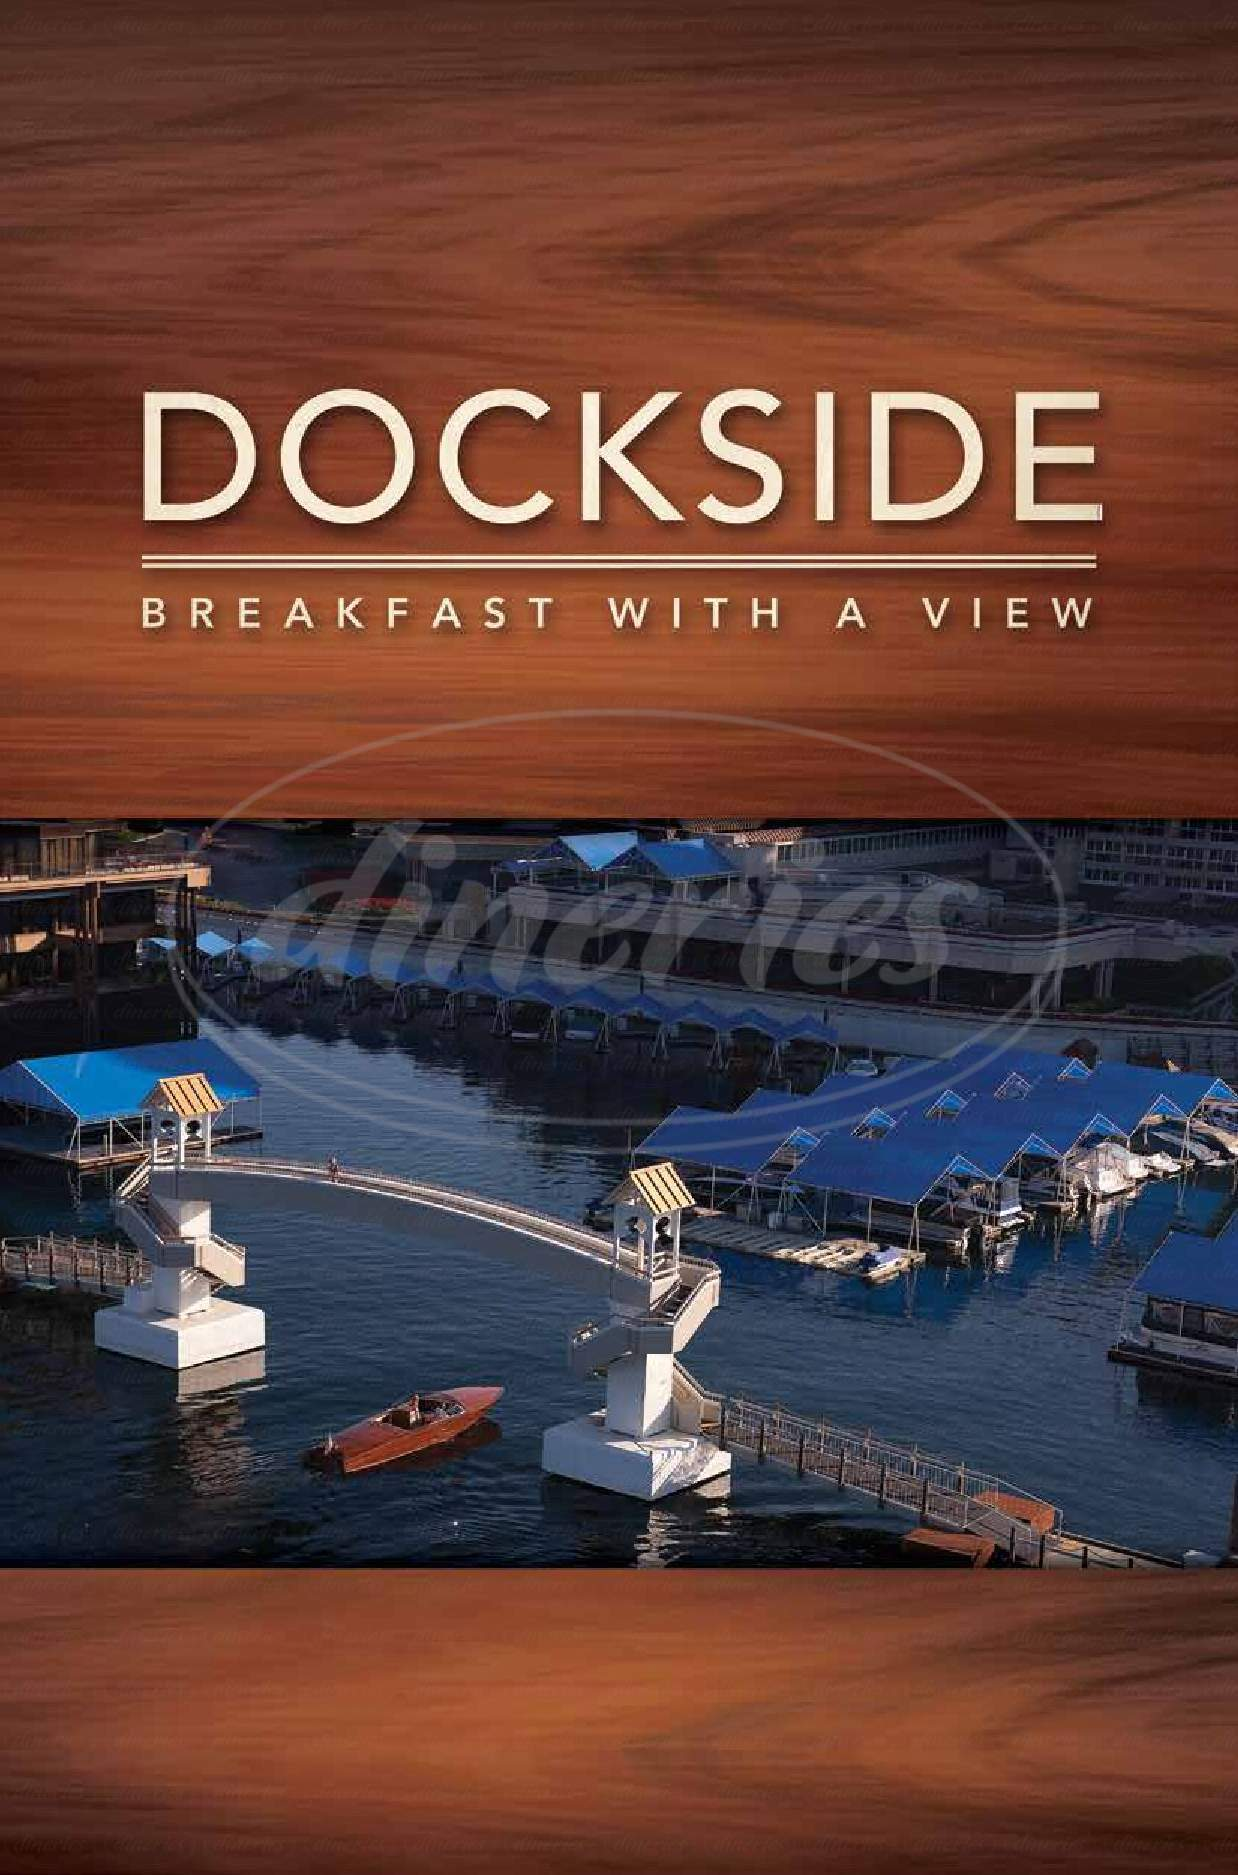 menu for Dockside